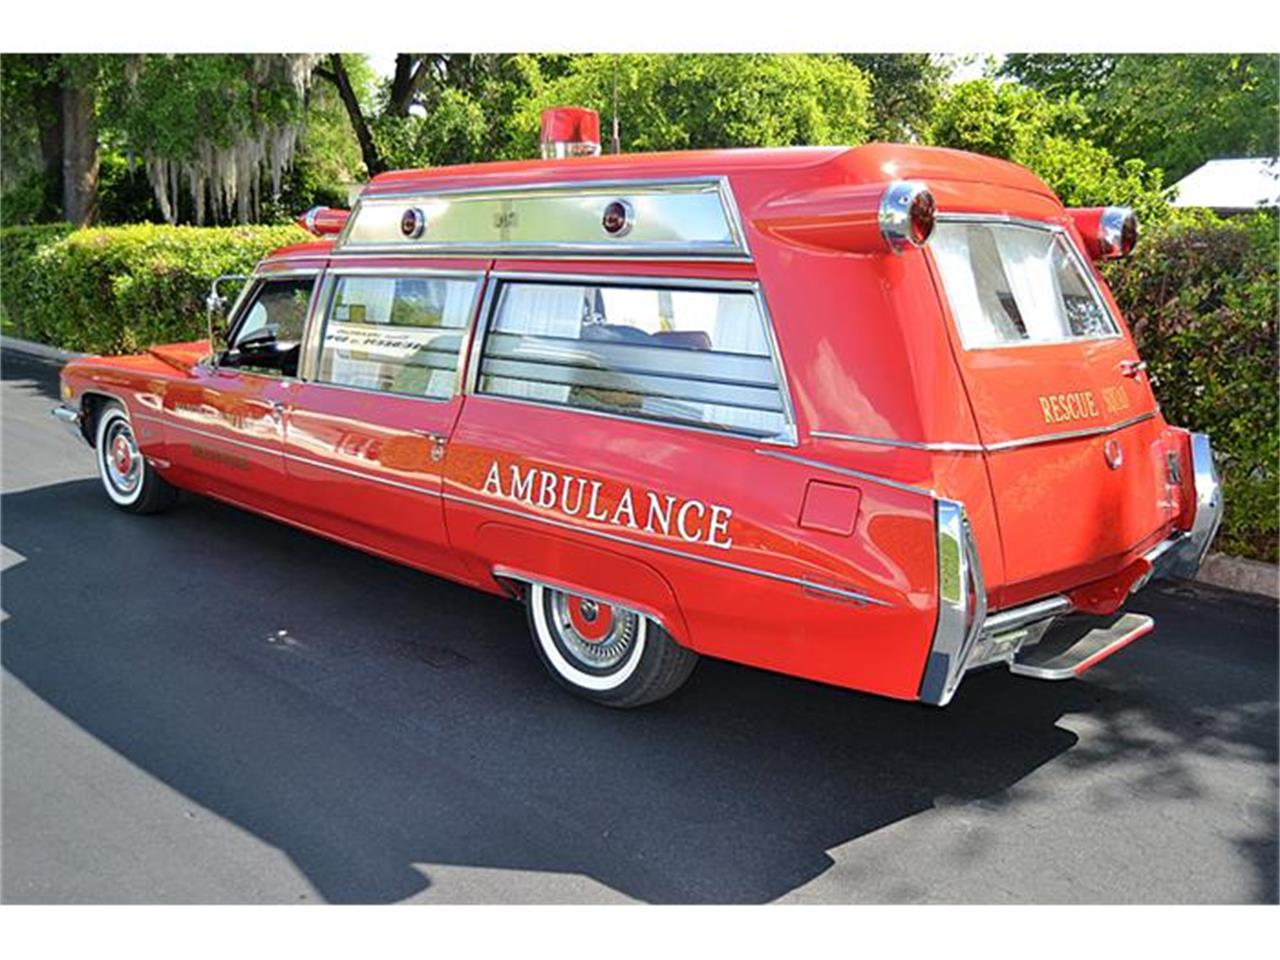 Large Picture of Classic 1972 Cadillac S&S Kesington Professional Ambulance located in Mount Dora (Orlando) Florida - $47,500.00 Offered by Classic Dreamcars, Inc. - IWNH